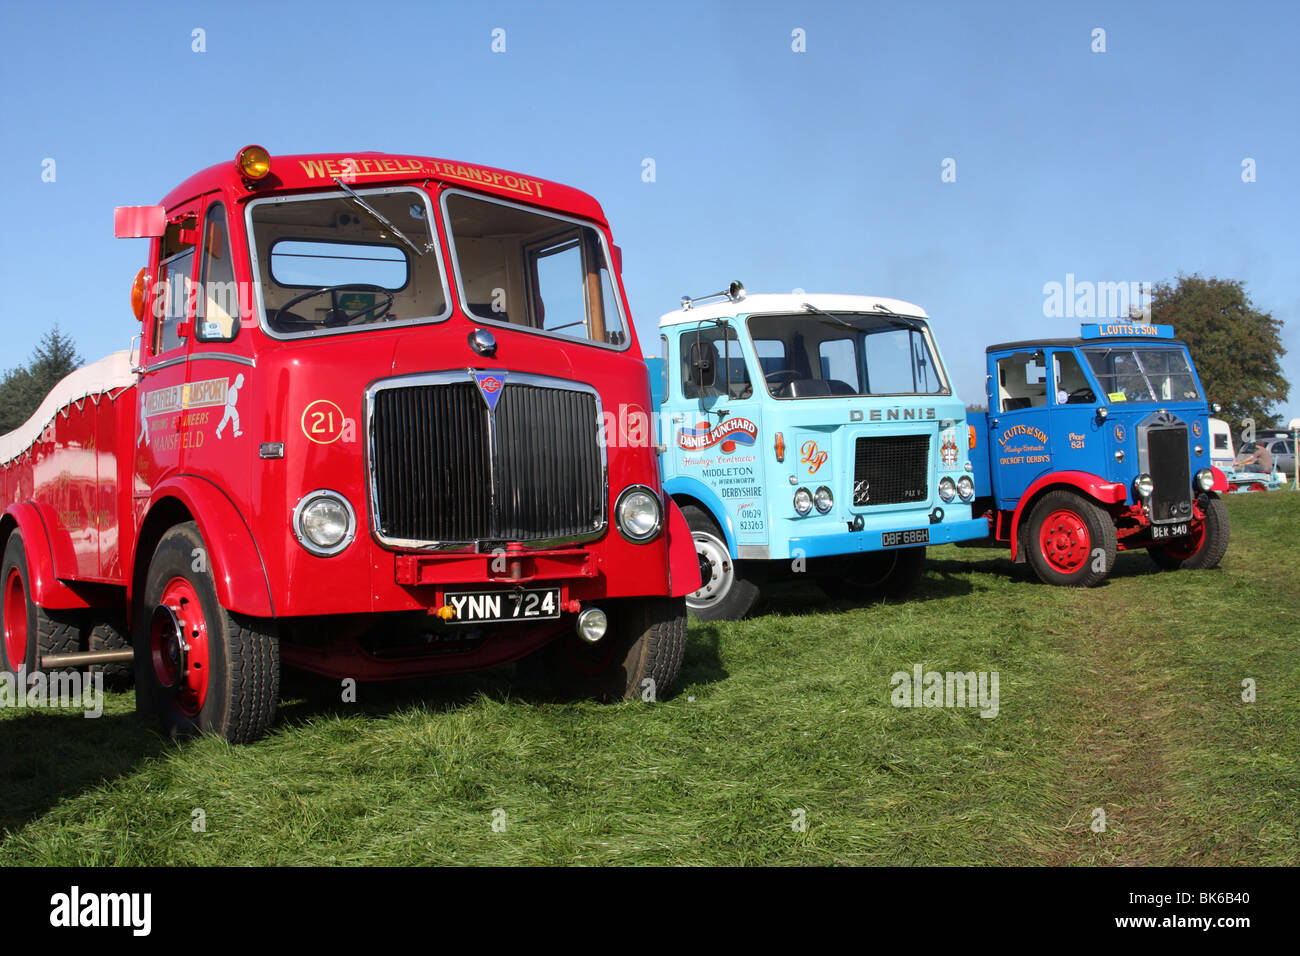 Old Lorries Stock Photos & Old Lorries Stock Images - Alamy